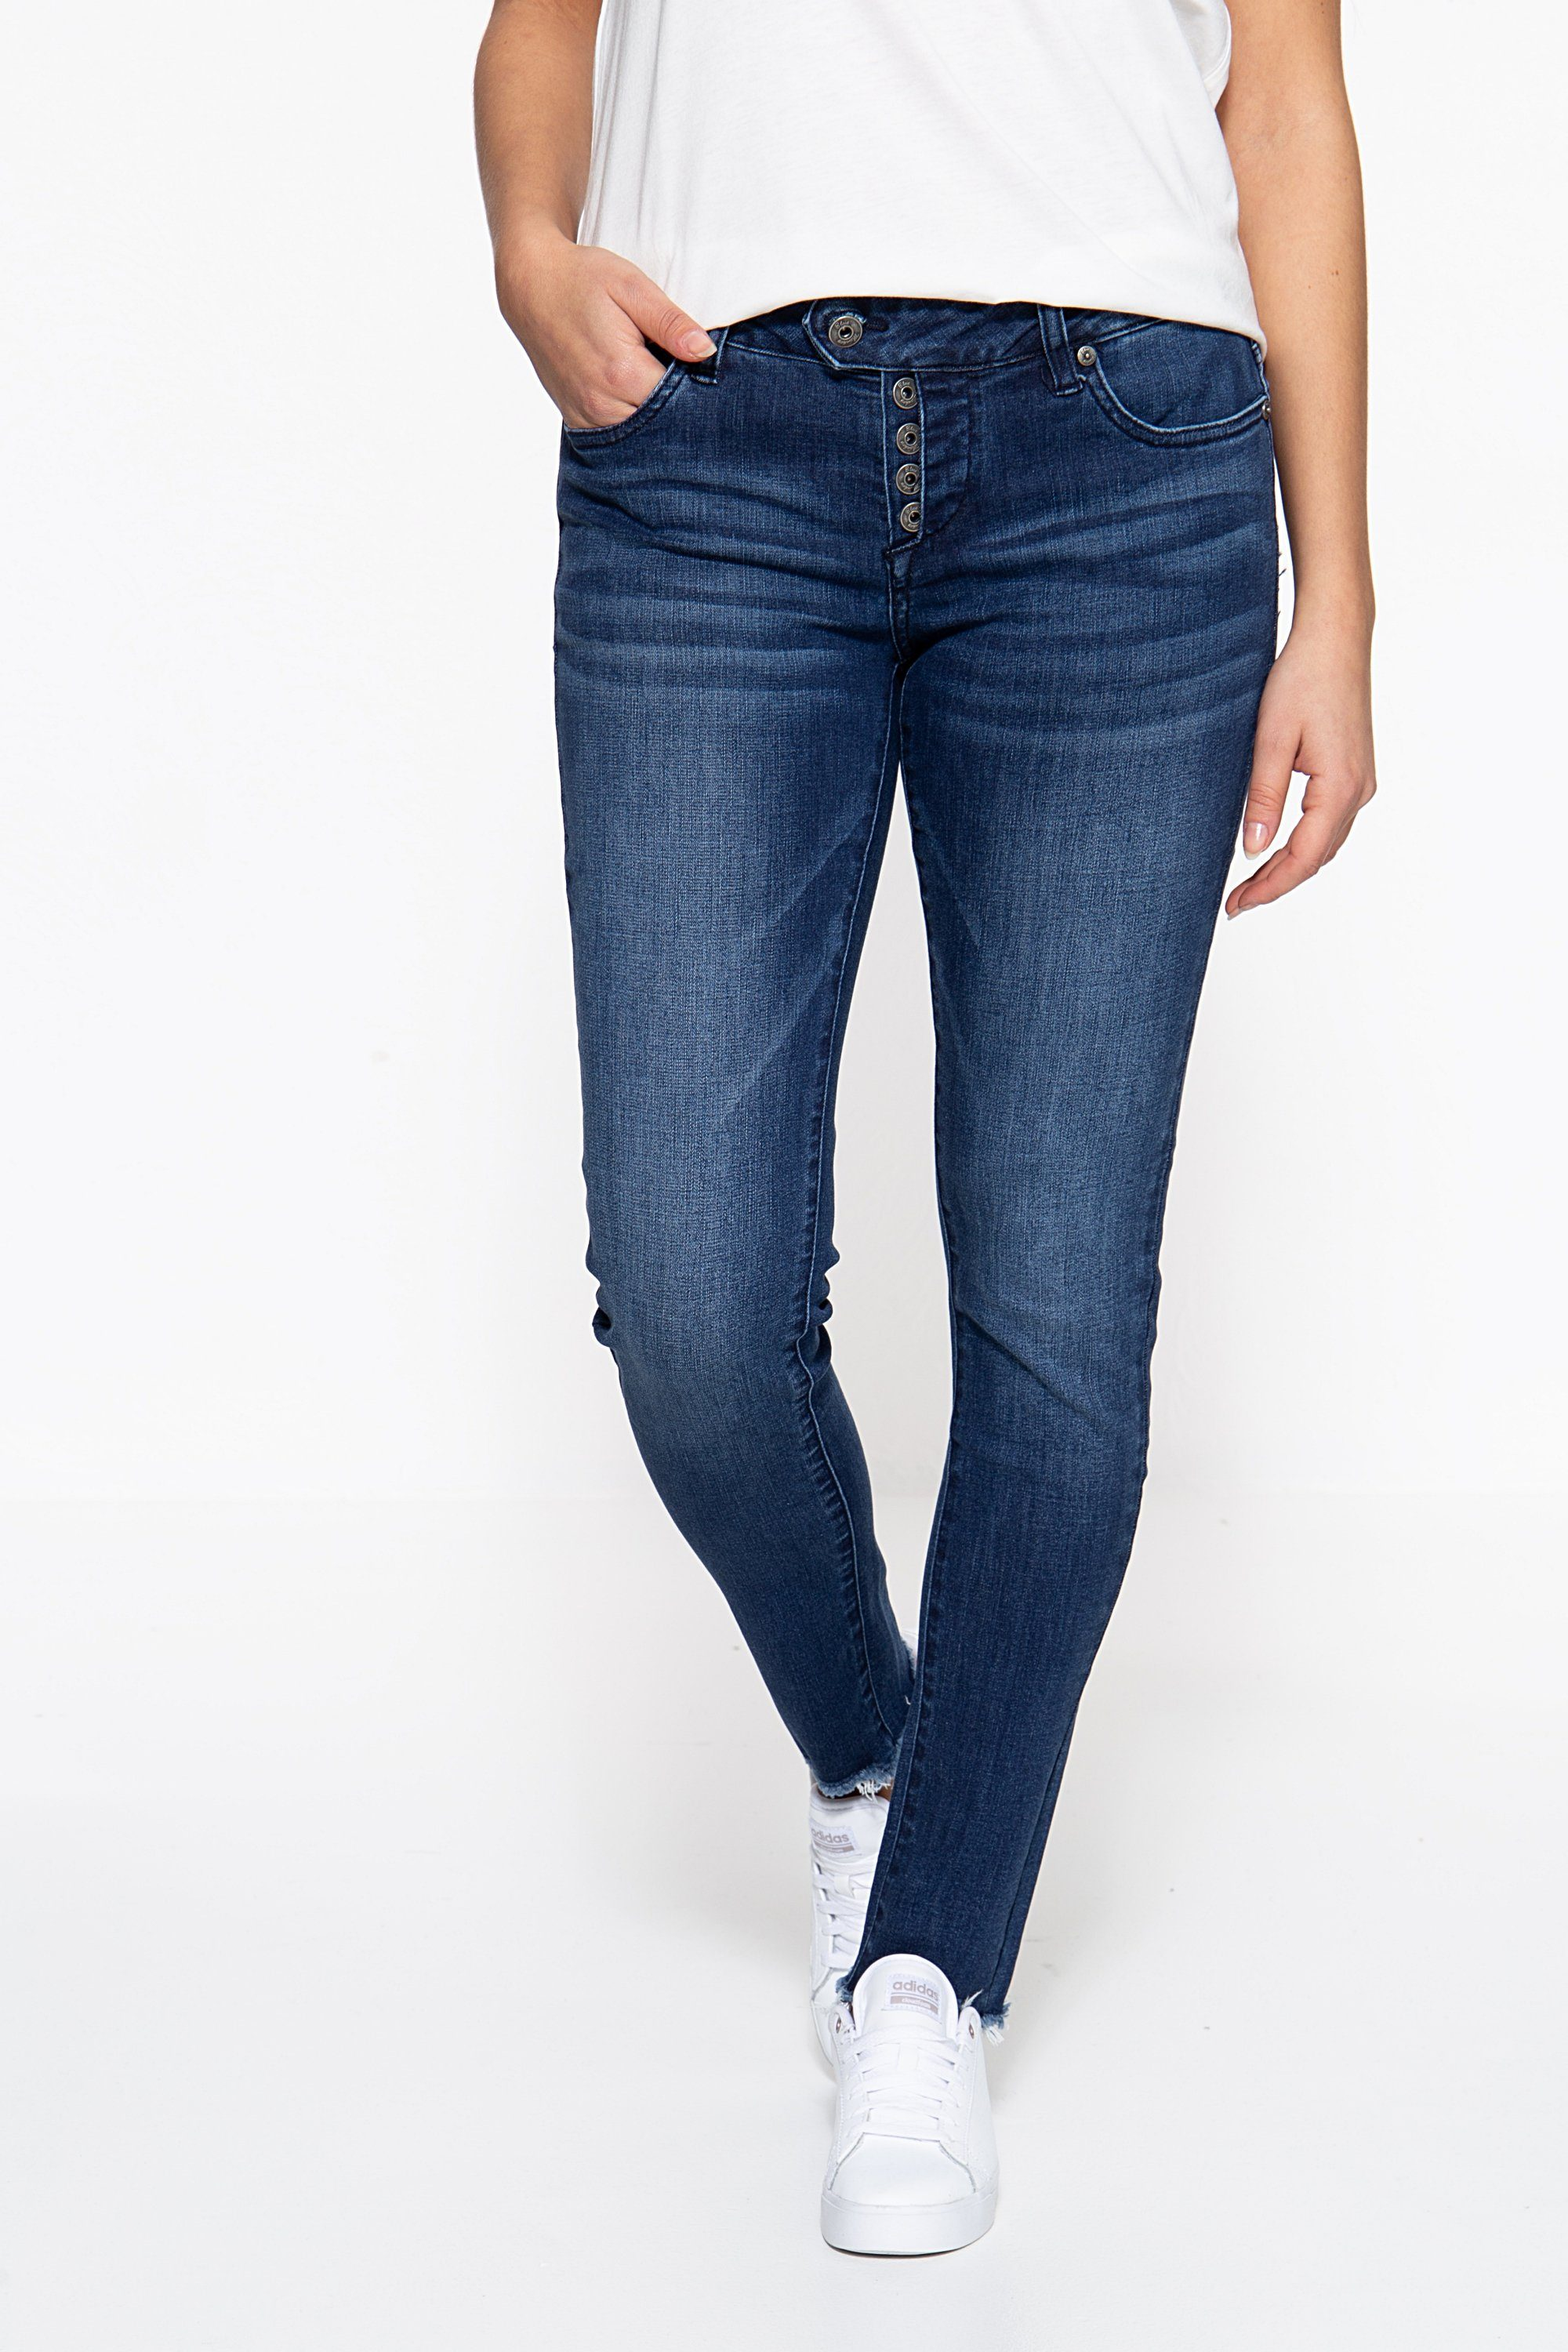 blue monkey -  Skinny-fit-Jeans Ruby 7239